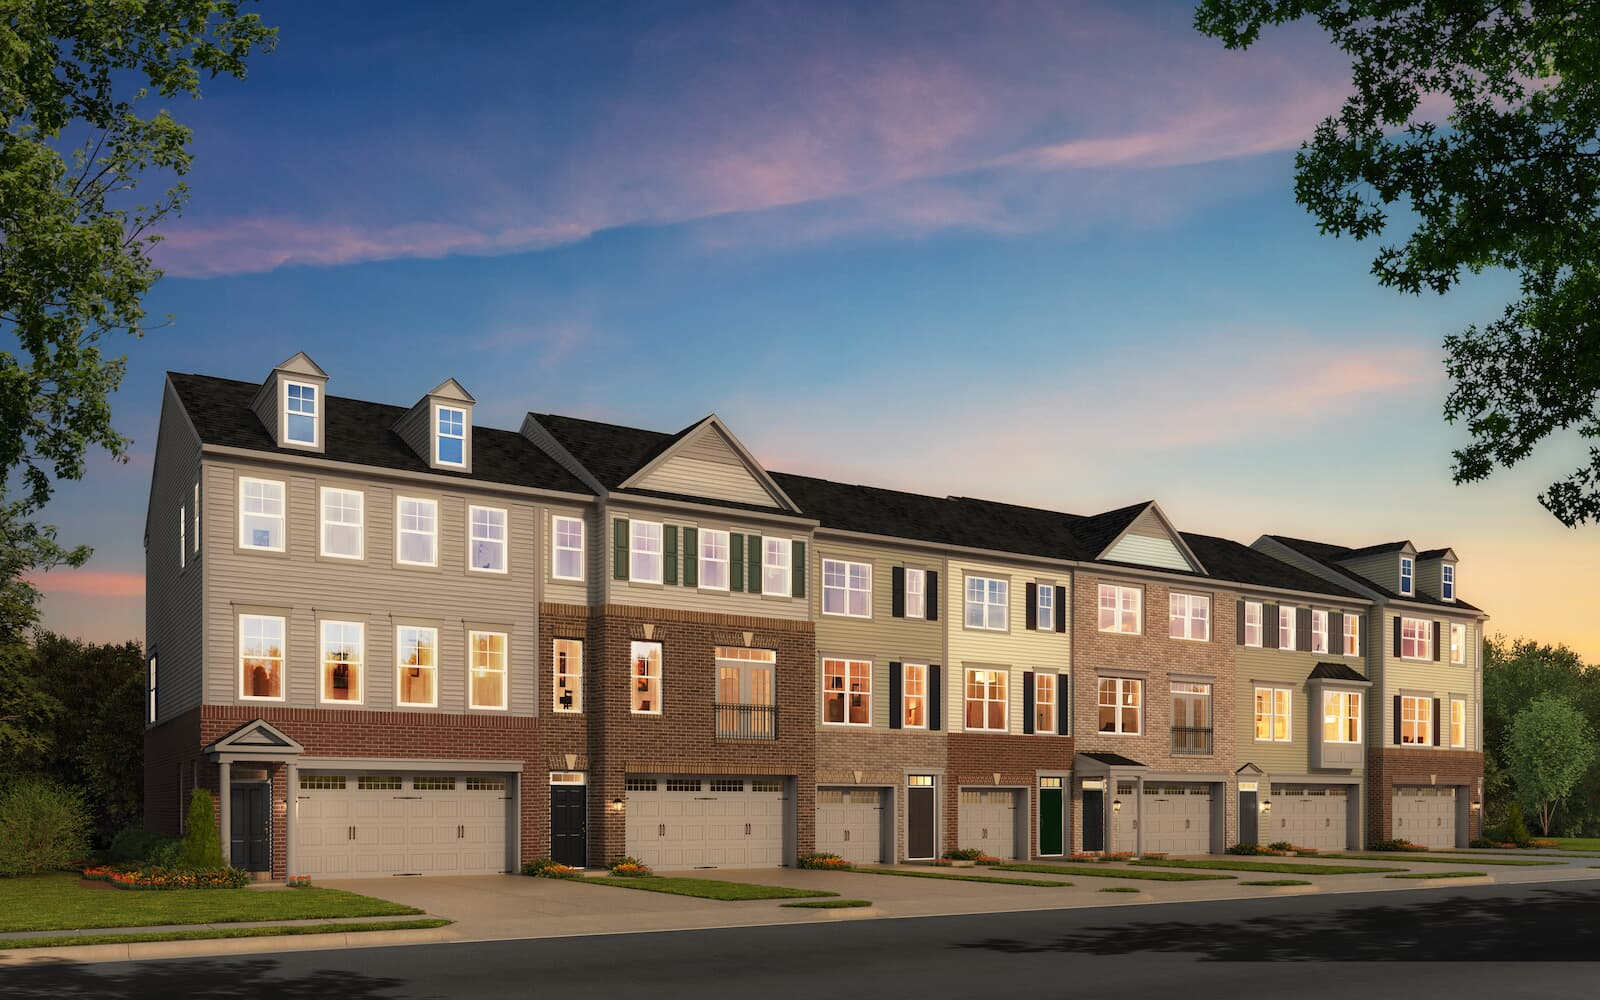 Orion-exterior-rendering-townhomes-silver-spring-md-bradfords-landing-brookfield-residential